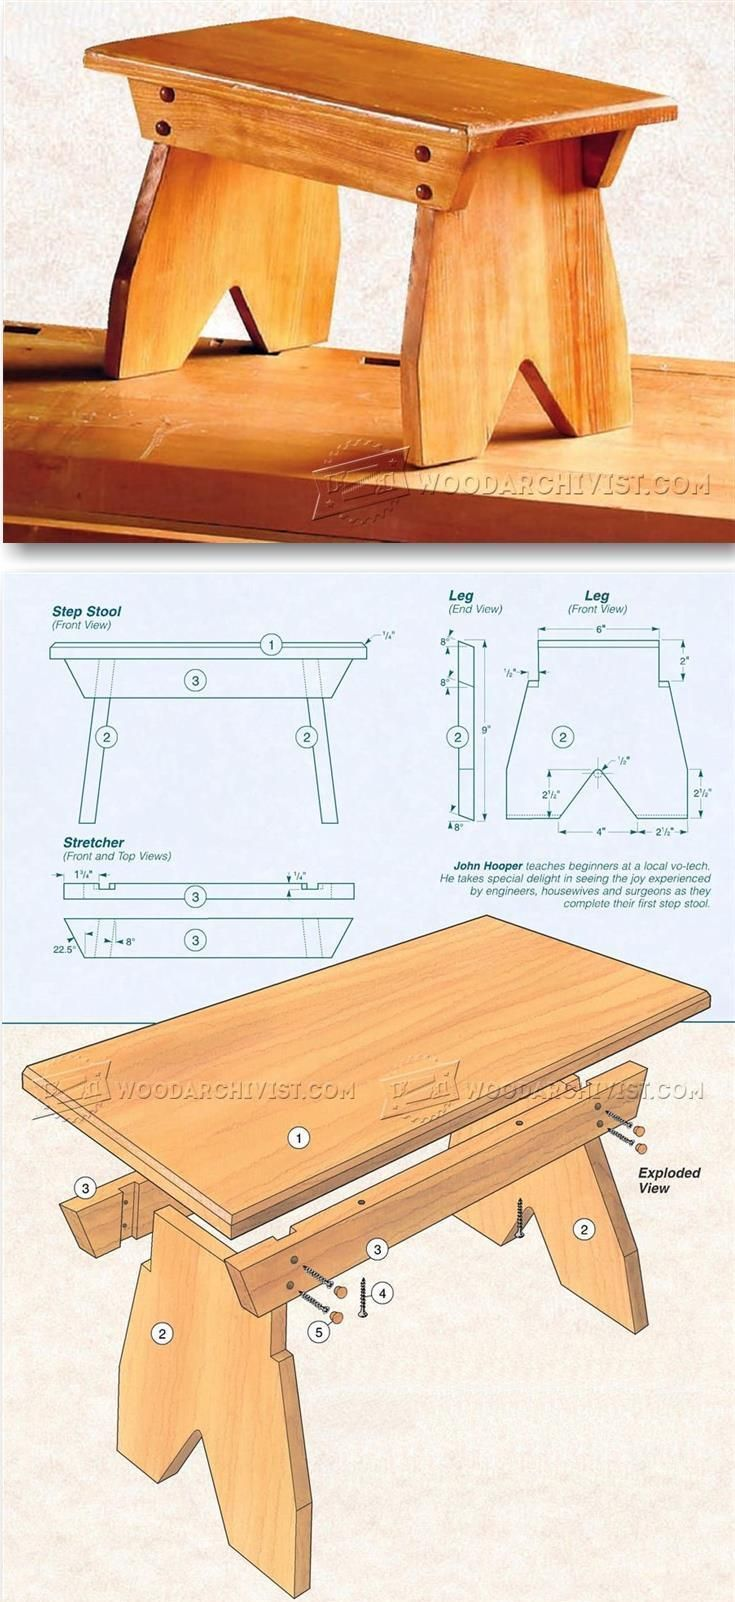 Understand Woodworking Plans And Designs Woodworking Stool Plans Simple Step Stool Plans